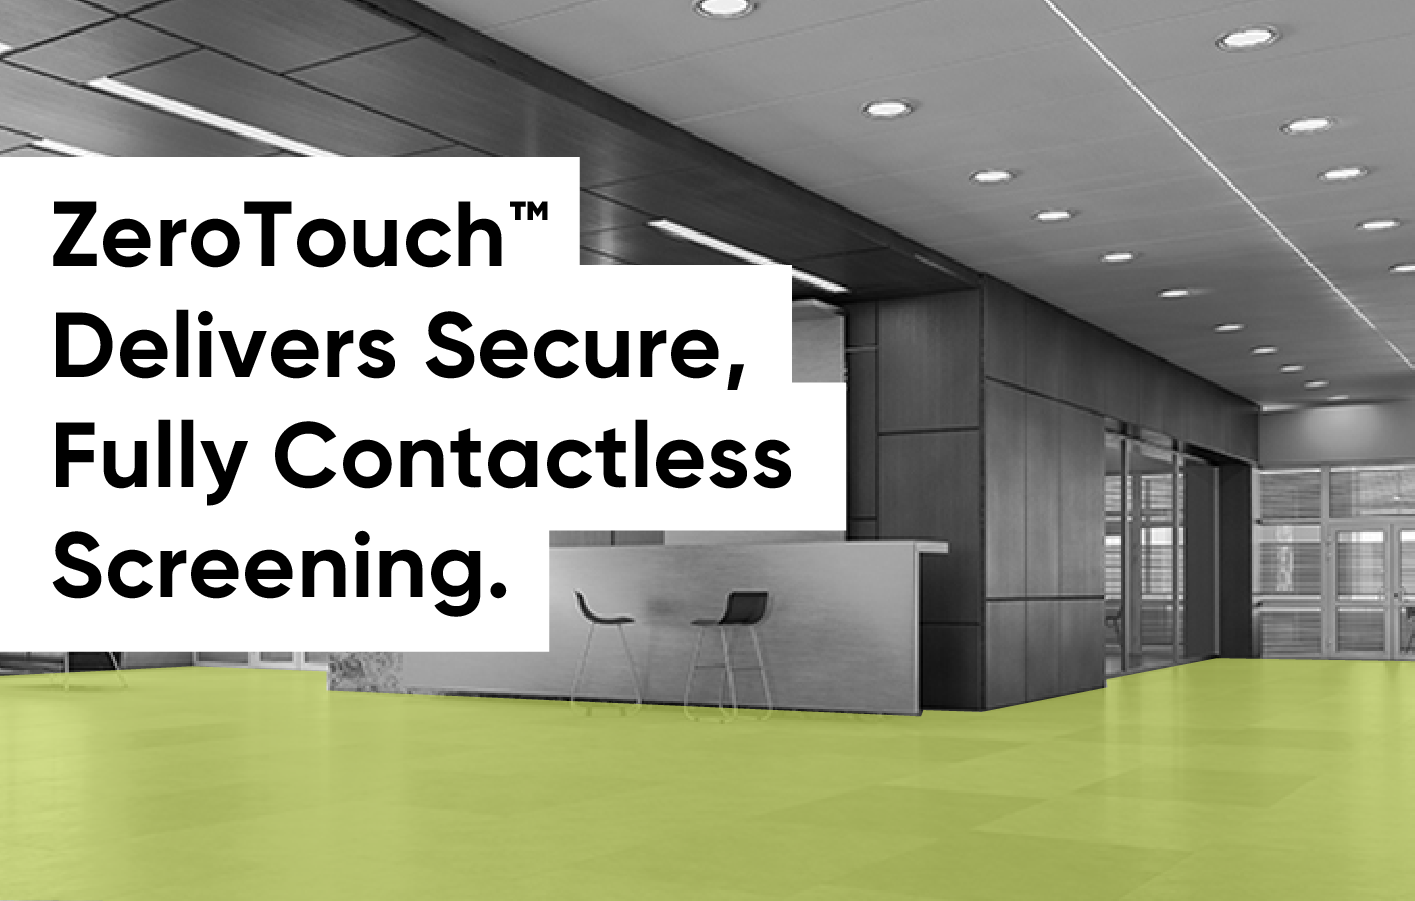 Introducing ZeroTouch™ for Touchless Sign-in / Sign-out and Secure Registration for Employees and Visitors Photo